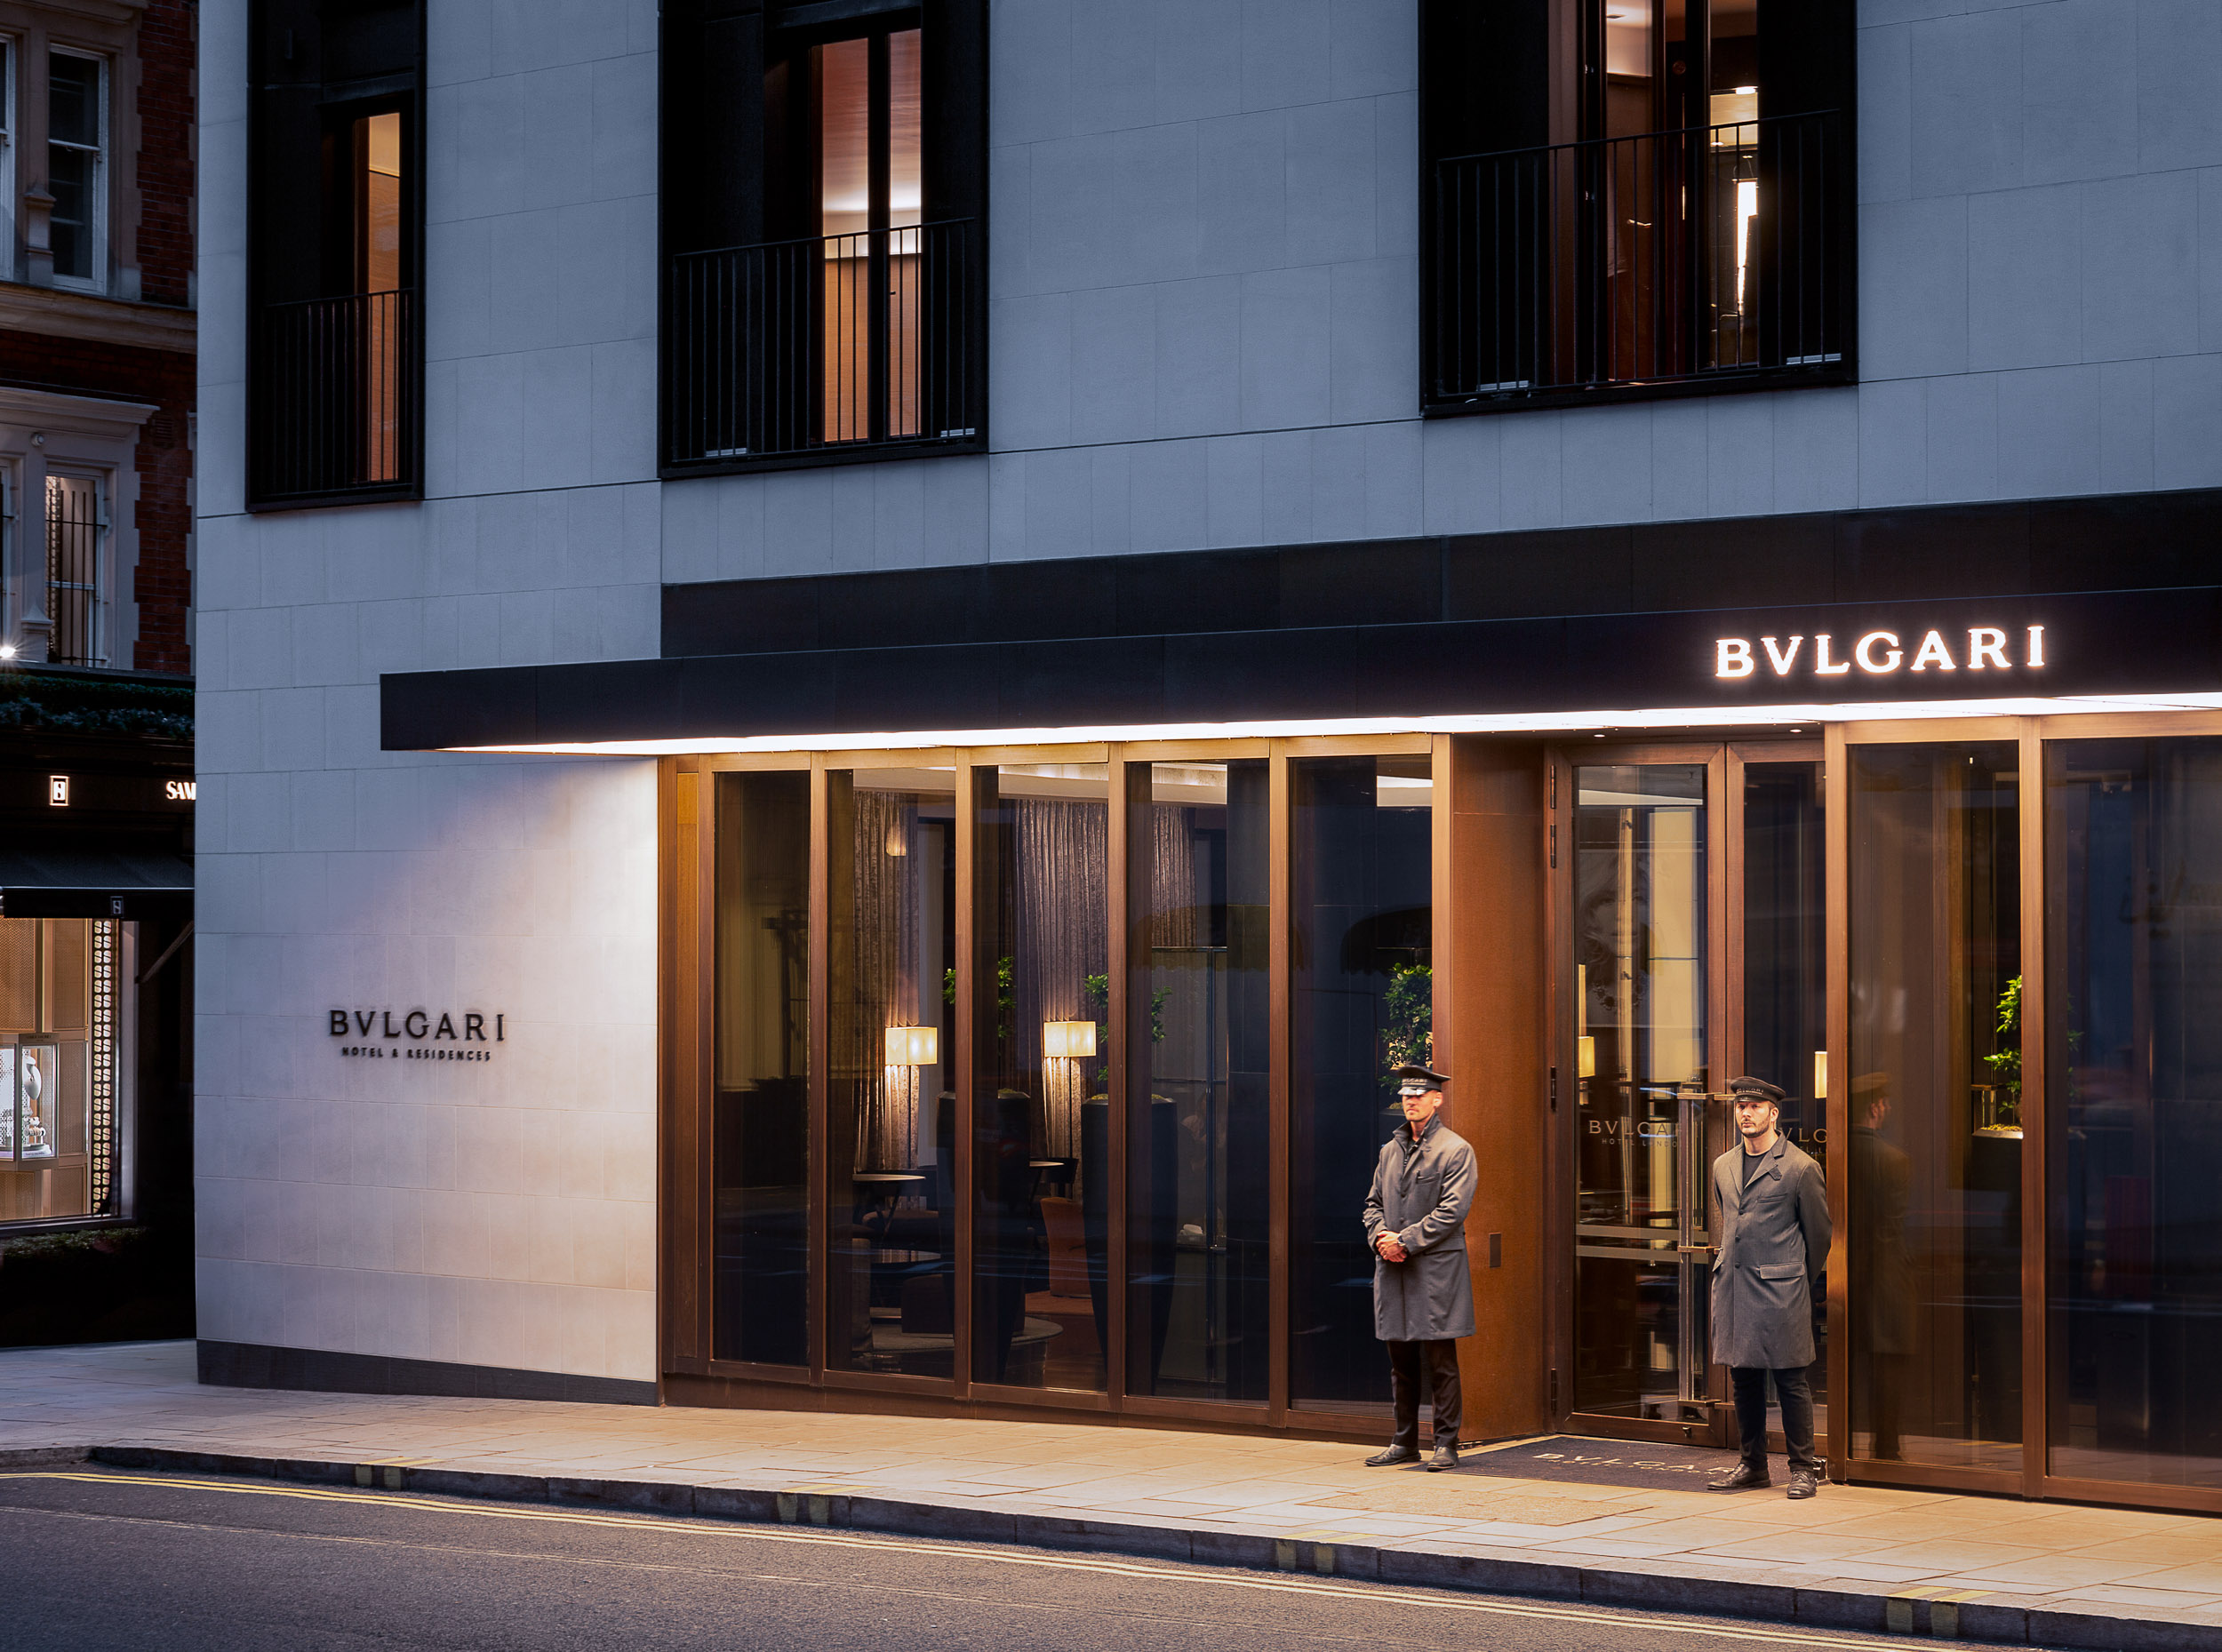 bulgari-82-Edit copy.jpg